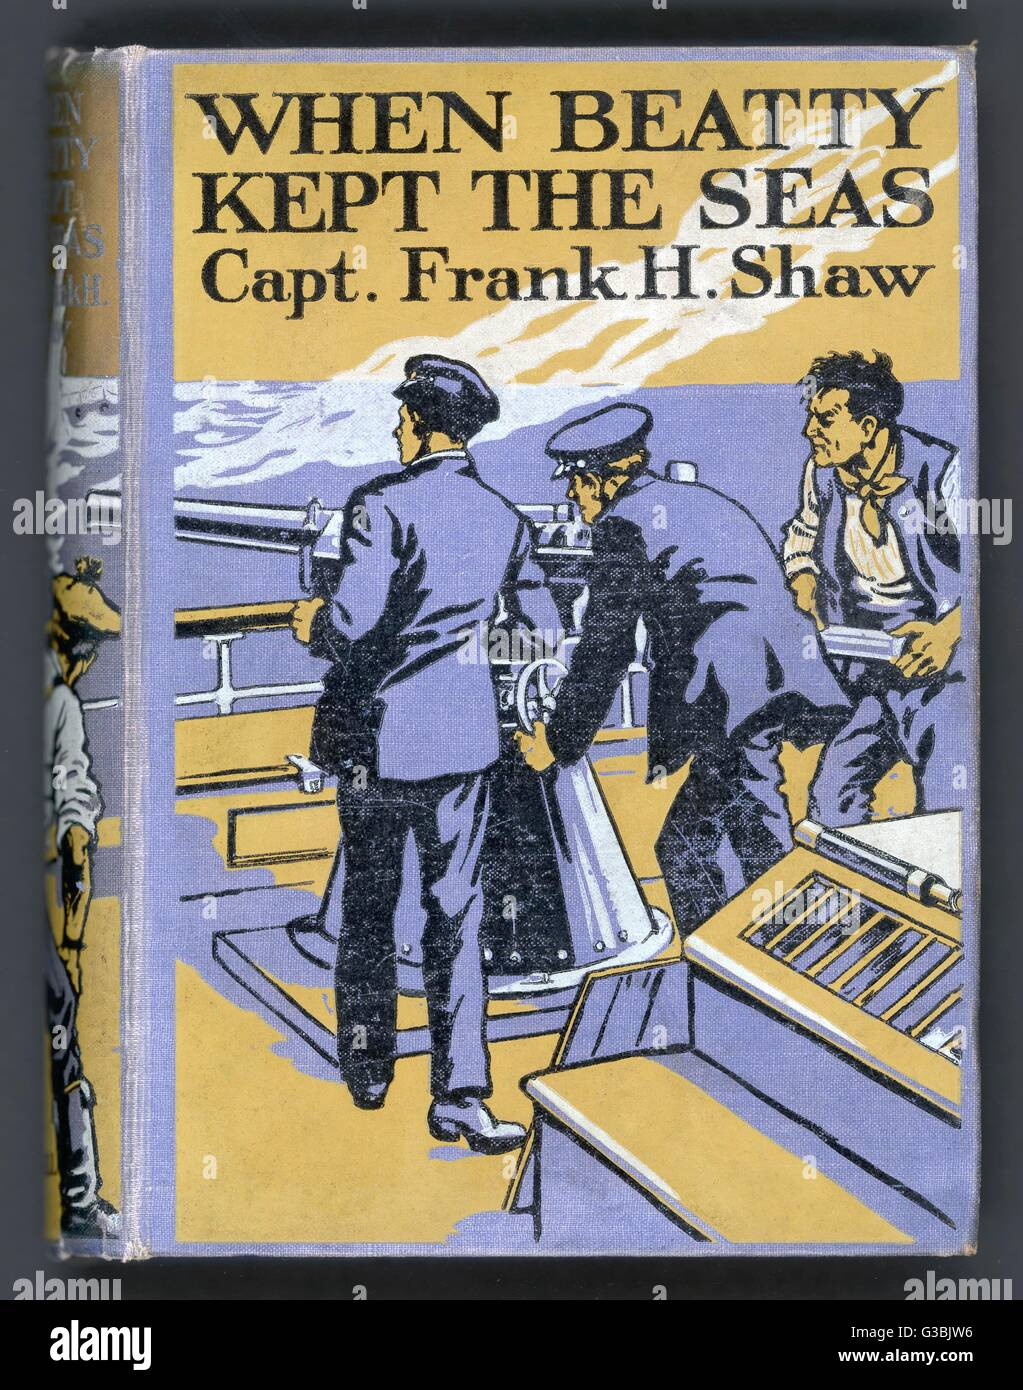 'When Beatty kept the seas' -  Captain Frank H Shaw's  stirring patriotic adventure  yarn is based on - Stock Image